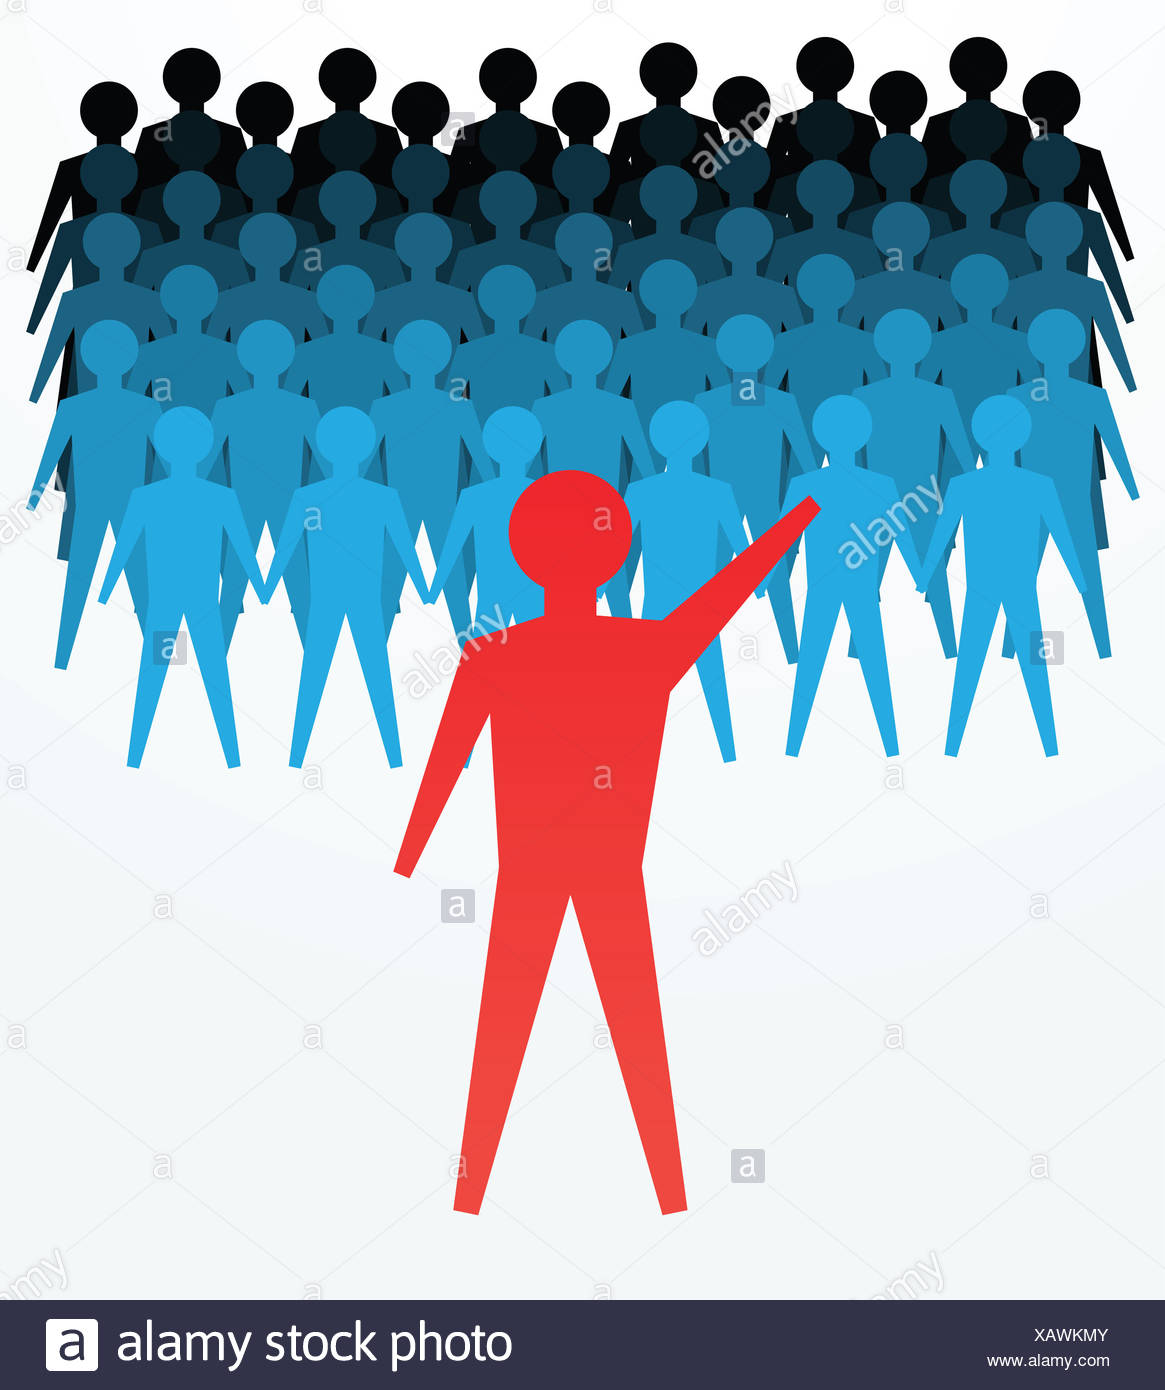 concepts of leadership - Stock Image